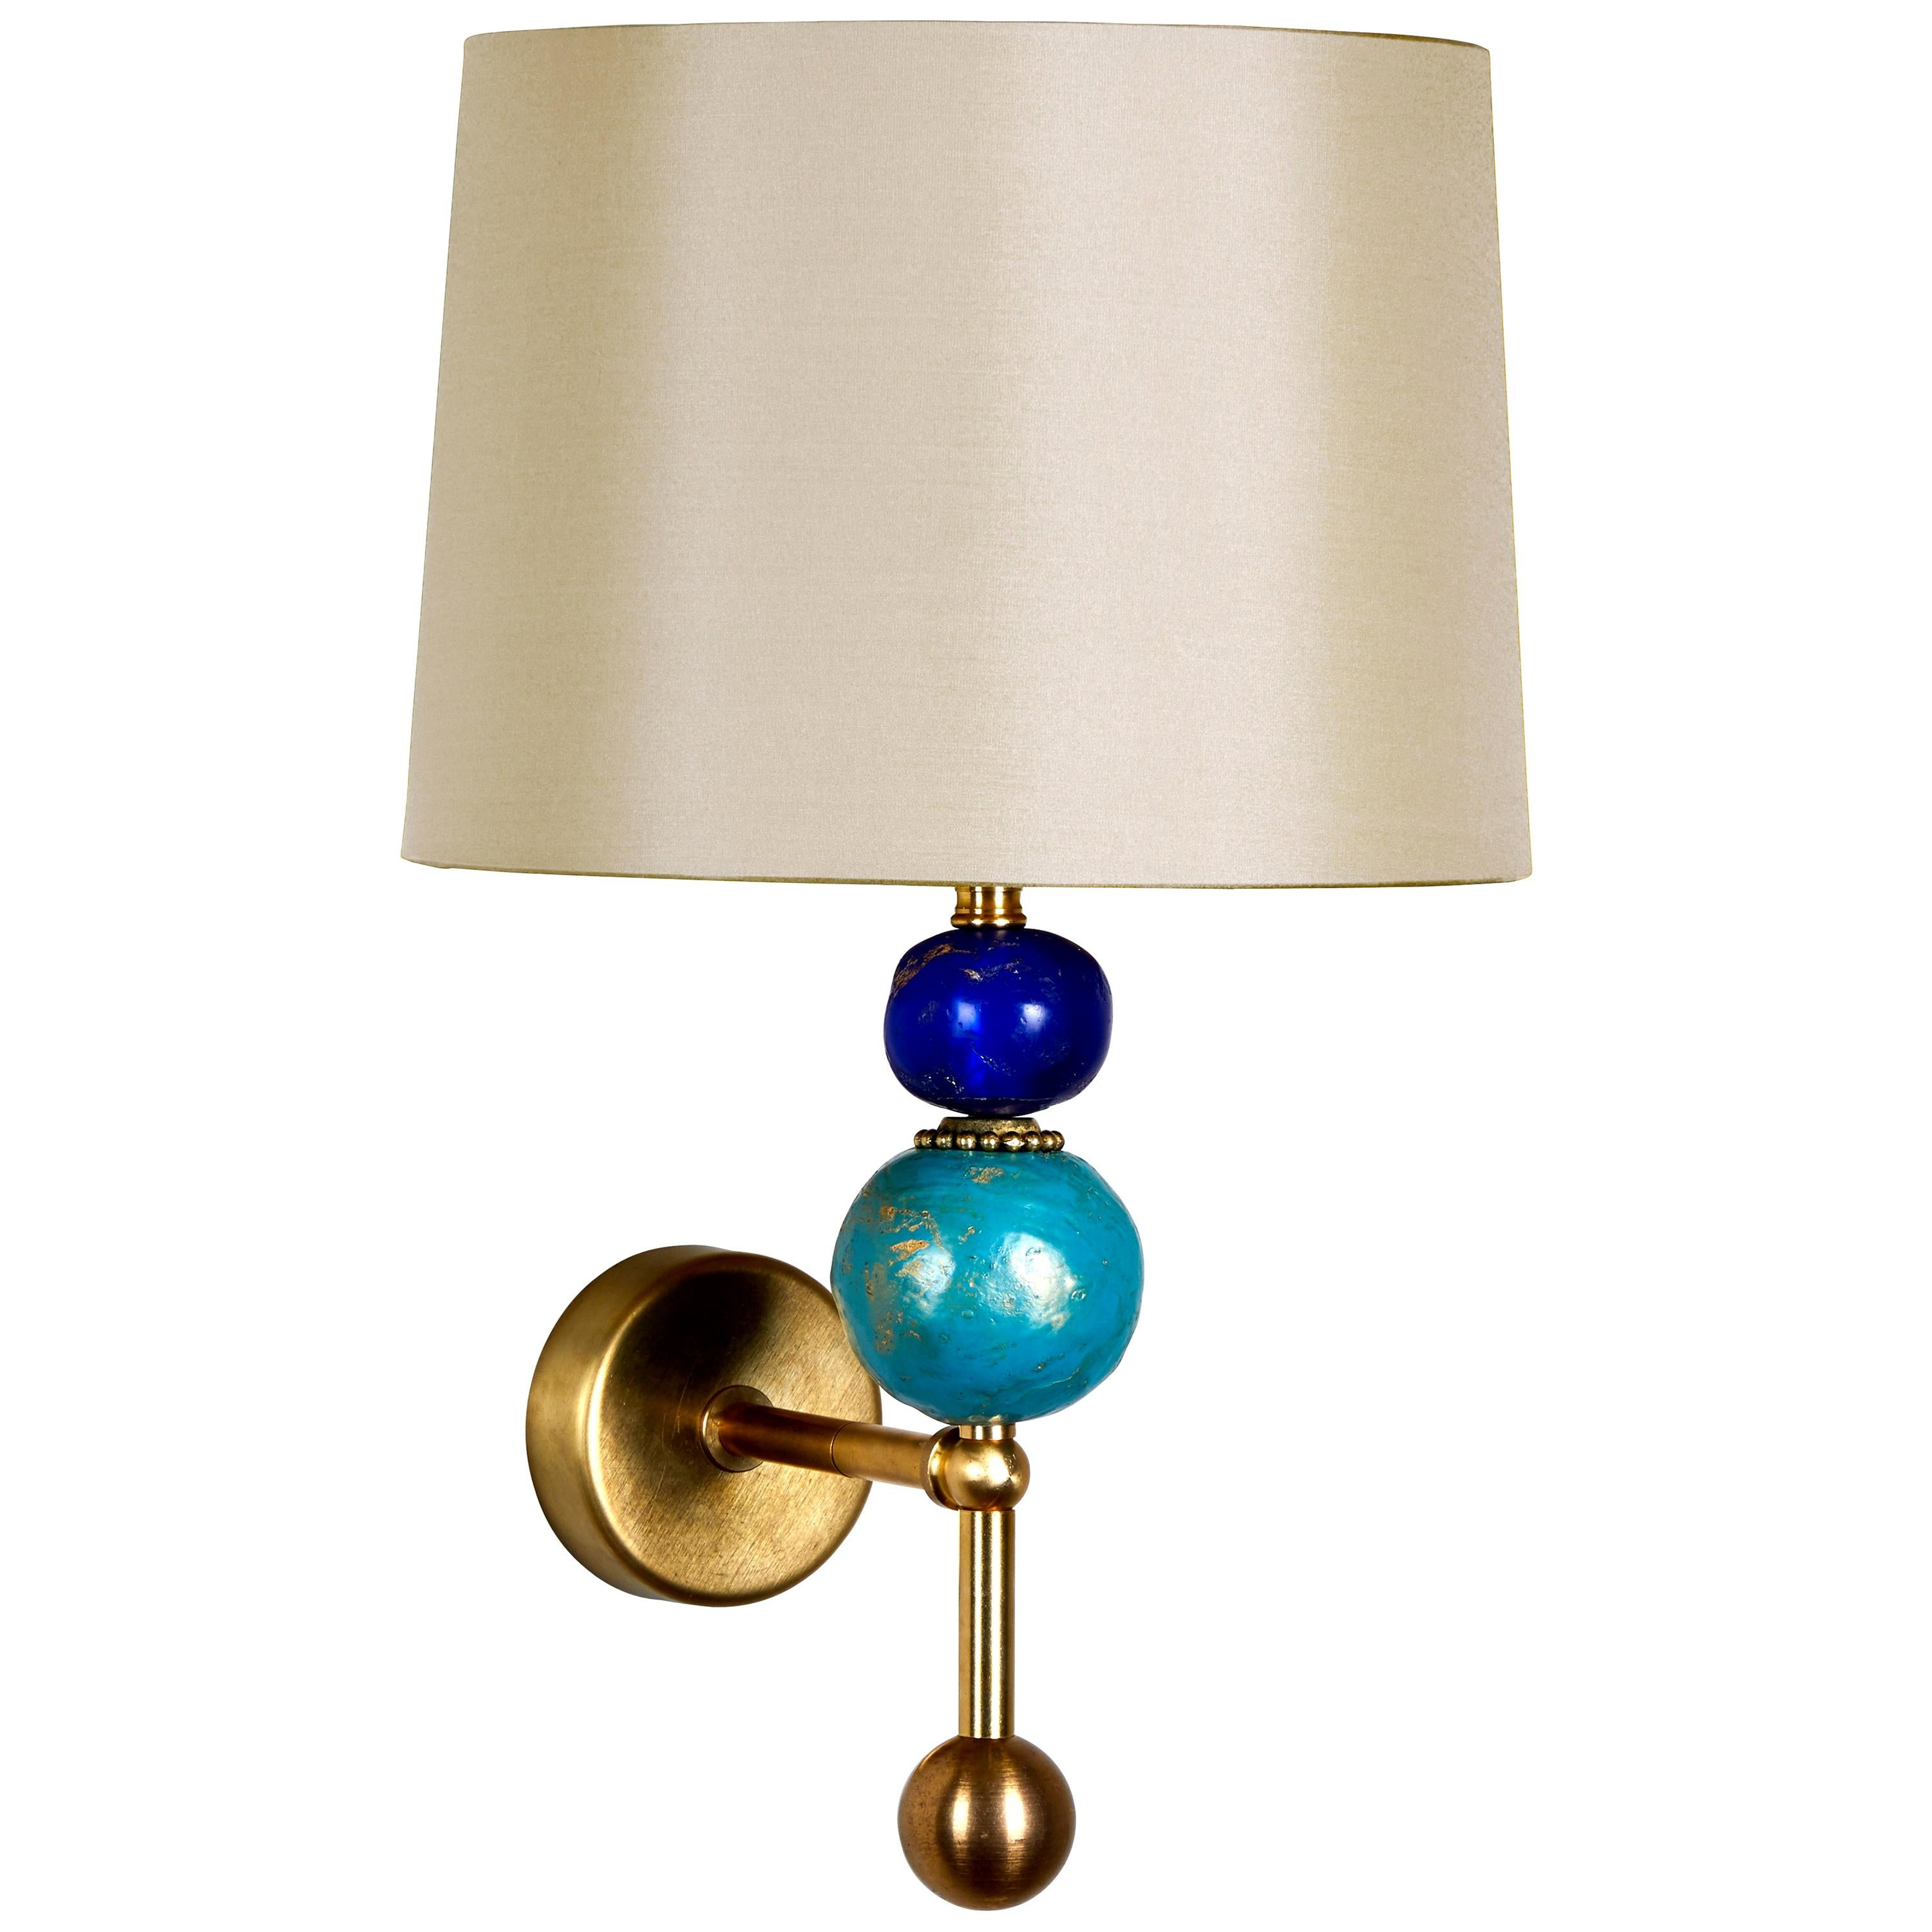 Chelsea Wall Light in Brass and Blue by Margit Wittig